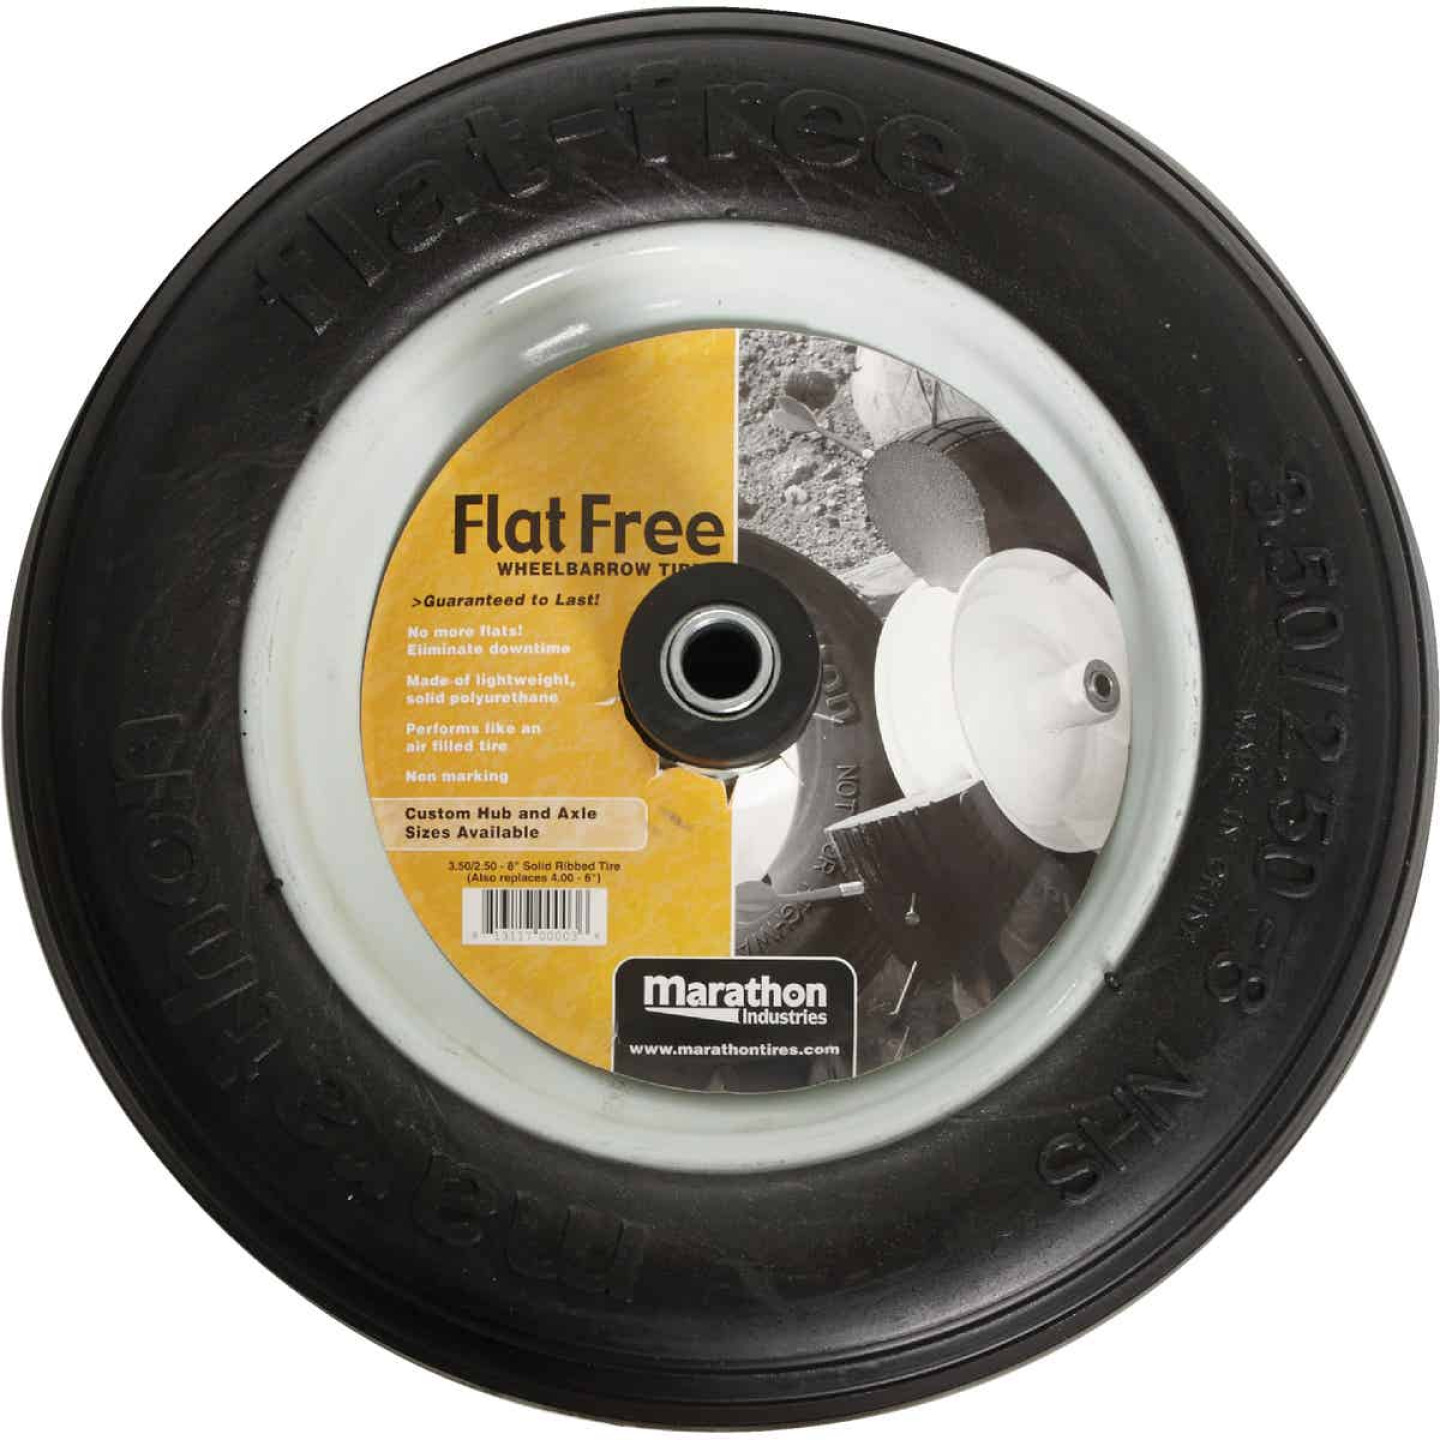 Marathon 13 x 350/250-8 In. Flat Free Wheelbarrow Wheel Image 2